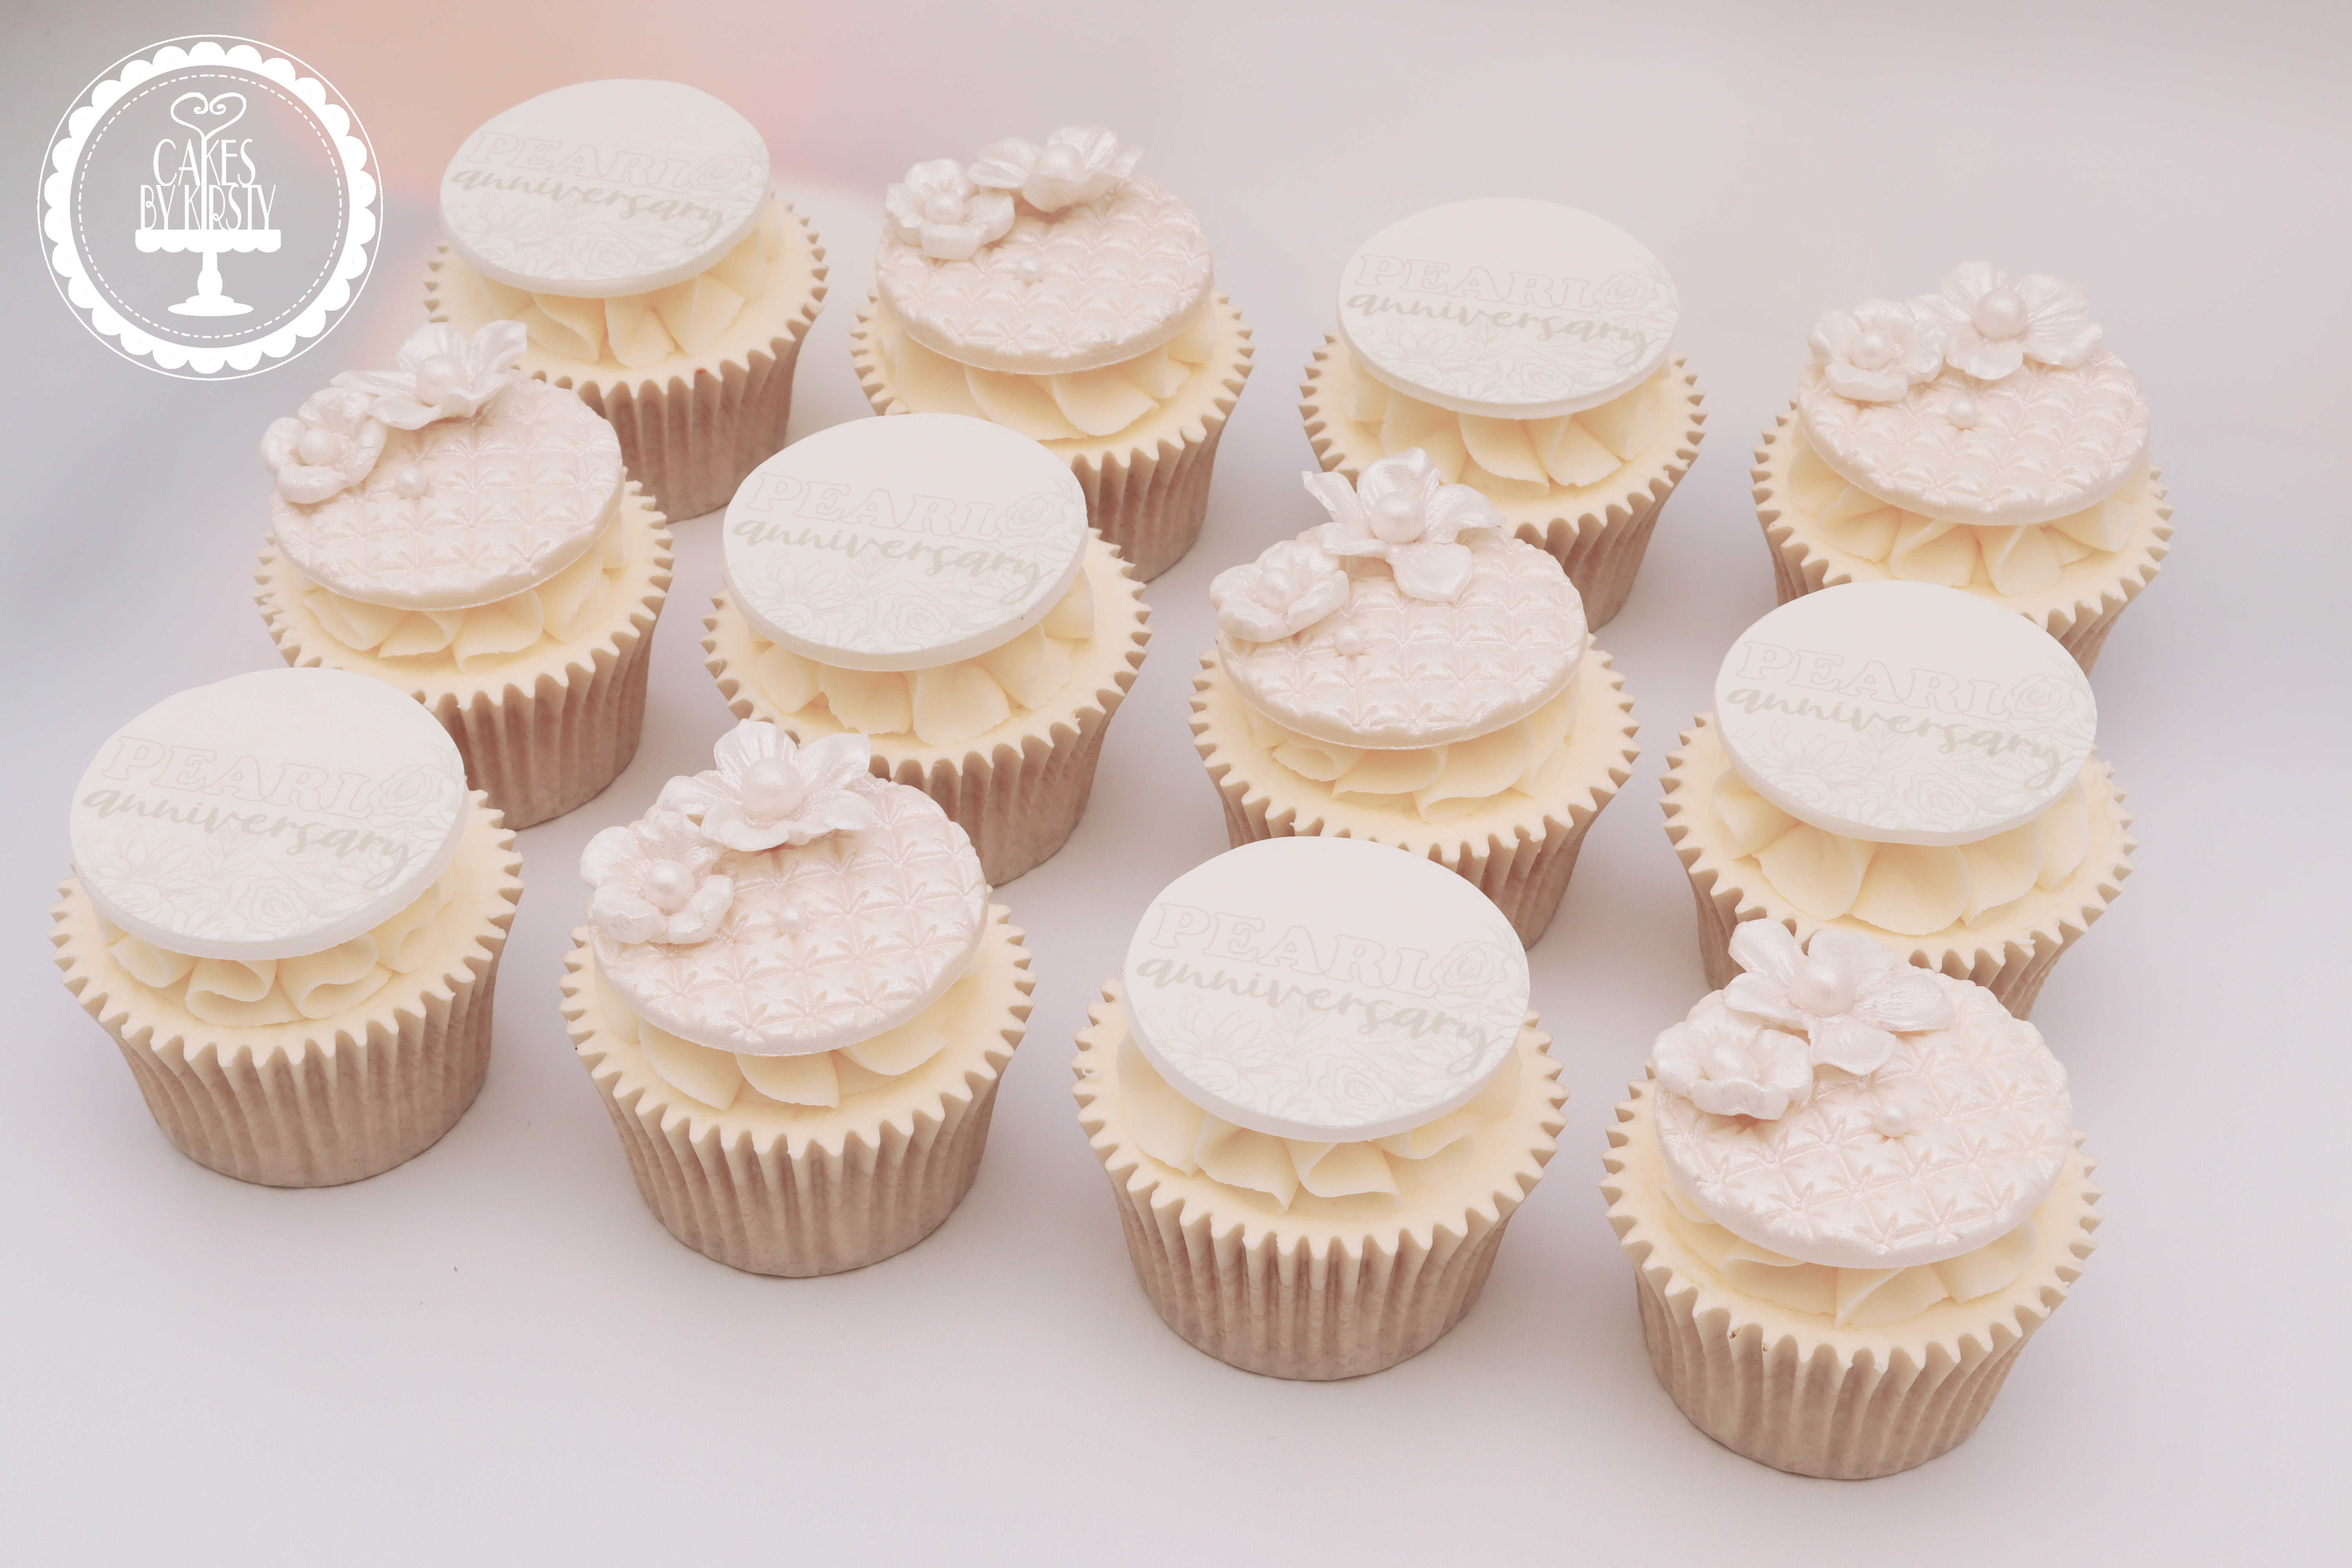 20190802 - Pearl Anniversary Cupcakes